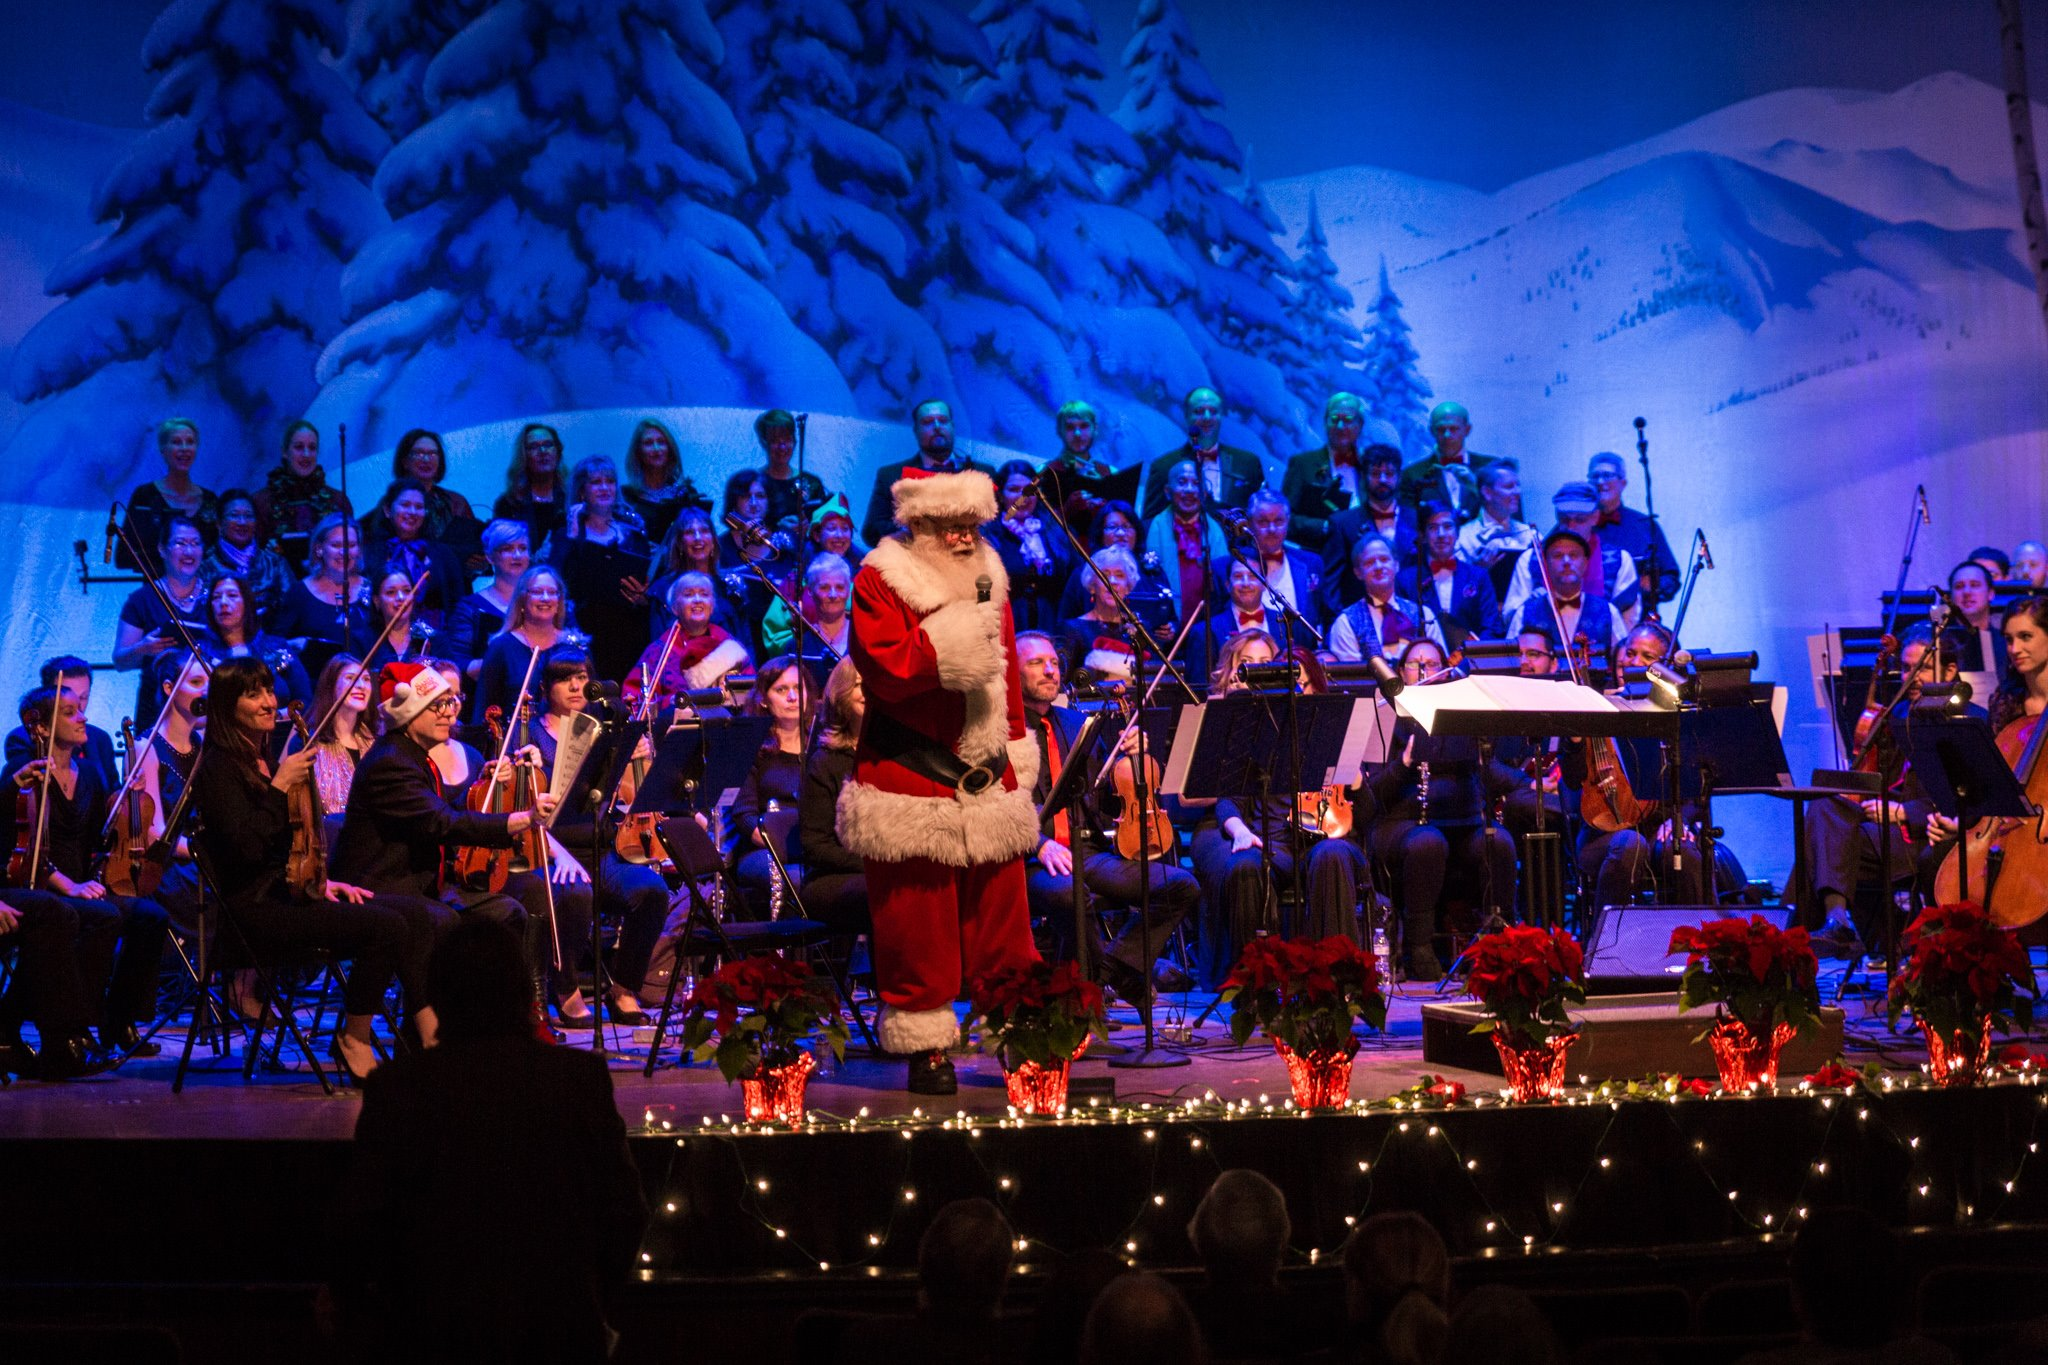 Santa Claus with the GSPO and GSPO Chorale